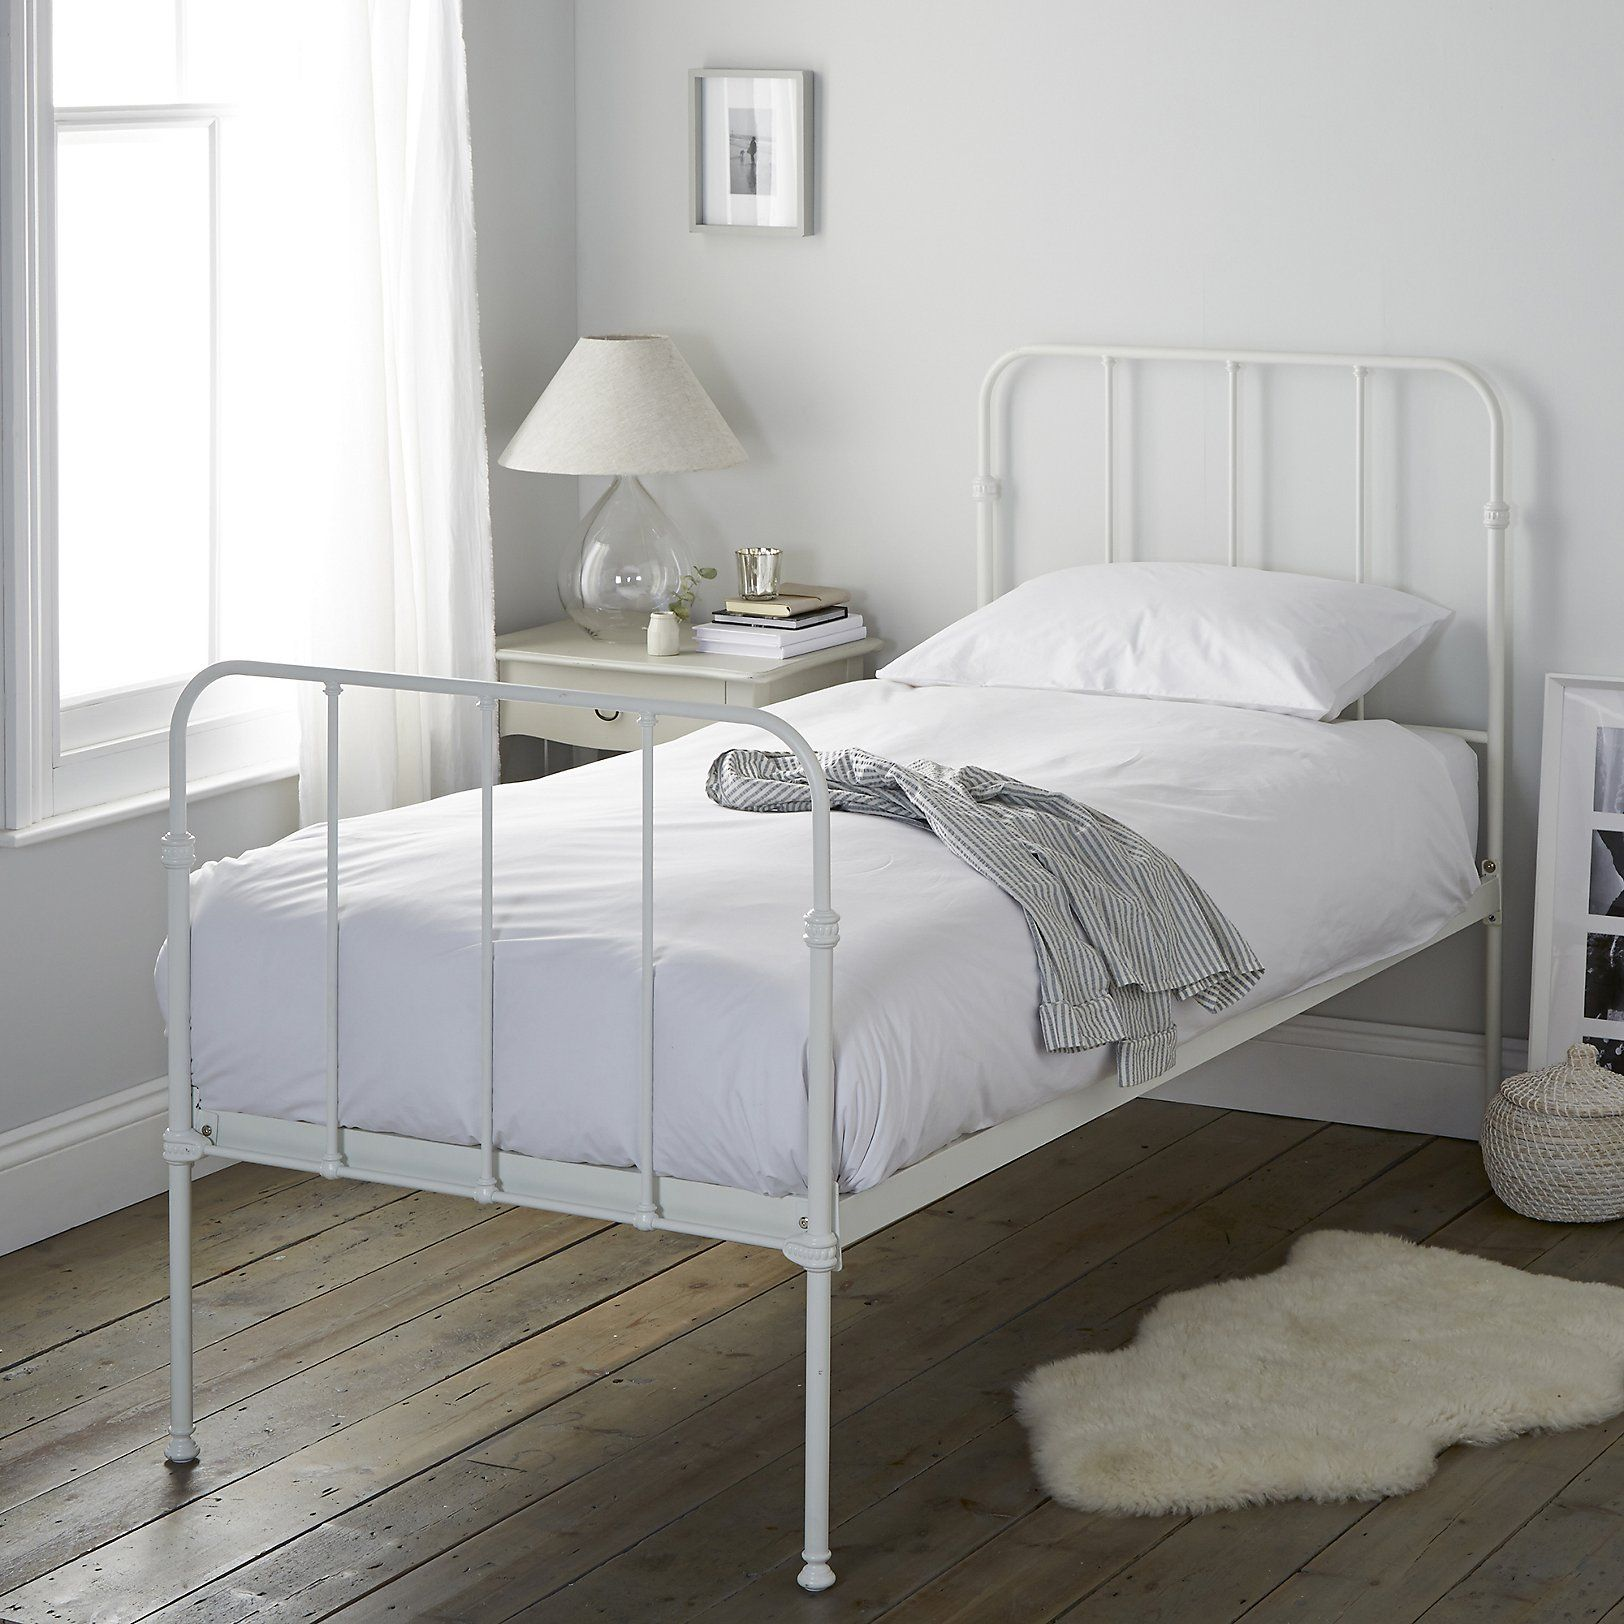 Stamford Single Bed Beds Furniture Home The White Company Uk